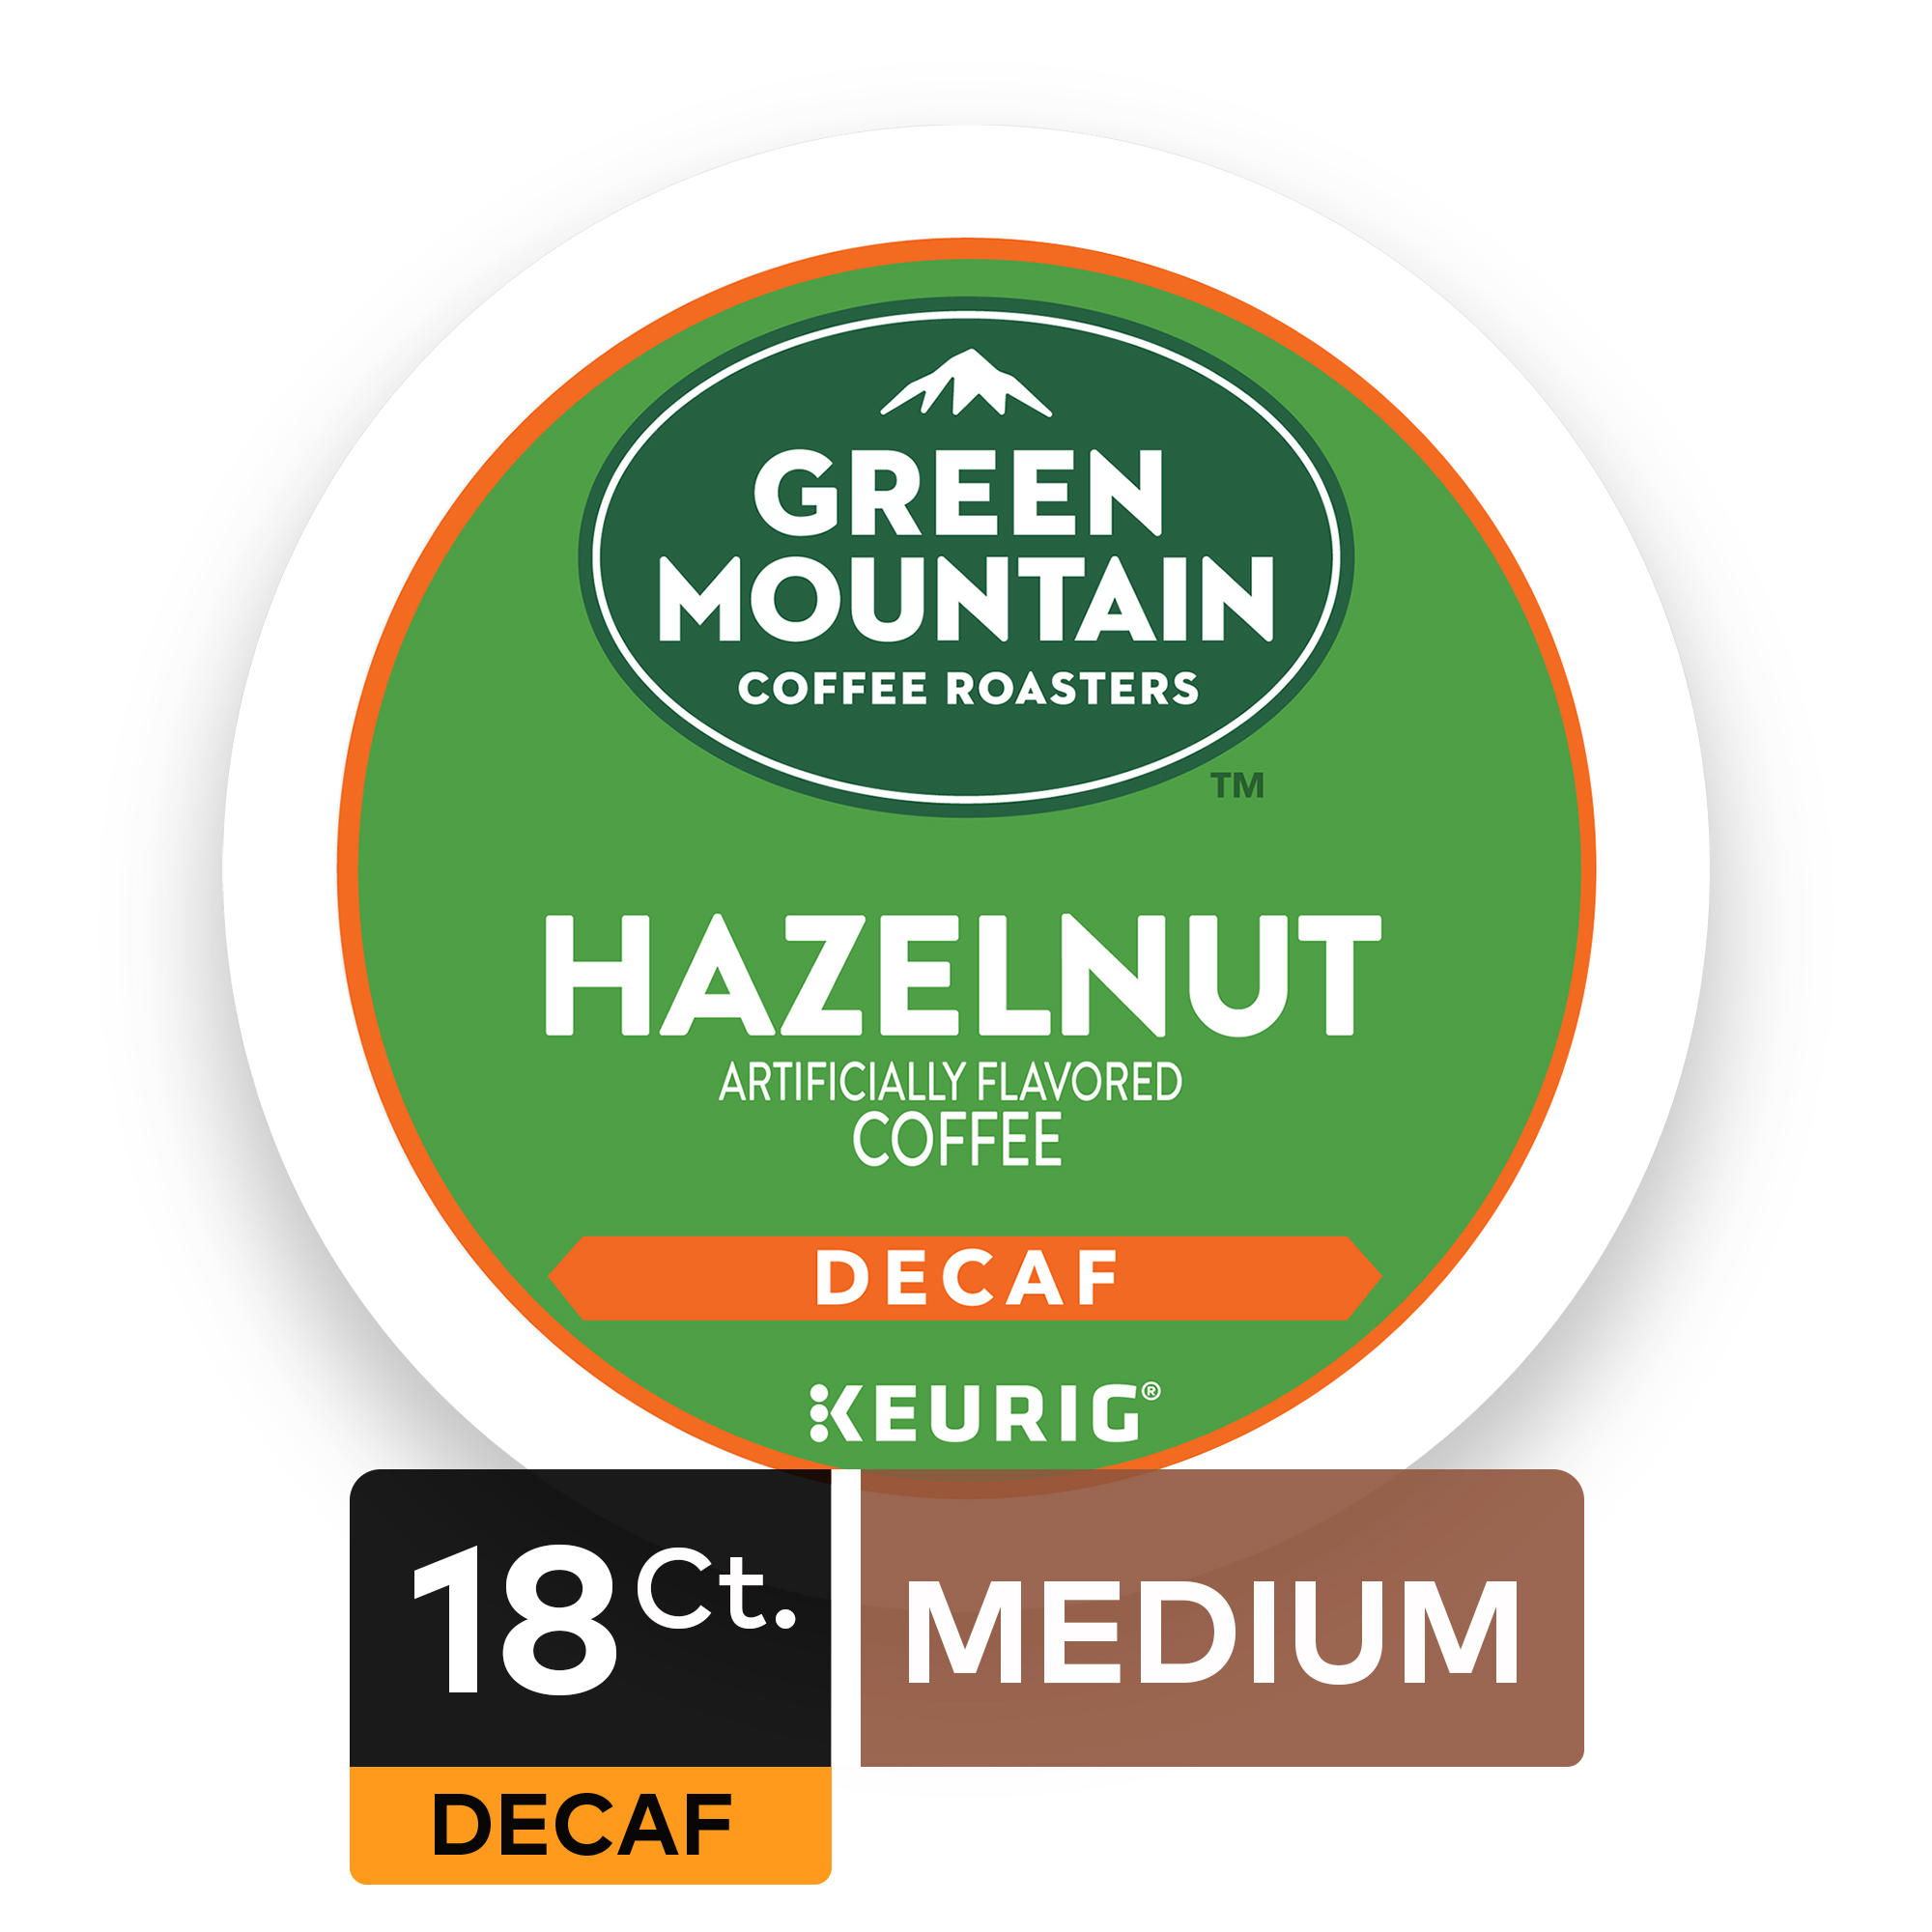 Green Mountain Coffee Roasters Hazelnut Decaf Keurig Single-Serve K-Cup pods, Light Roast Coffee, 18 Count